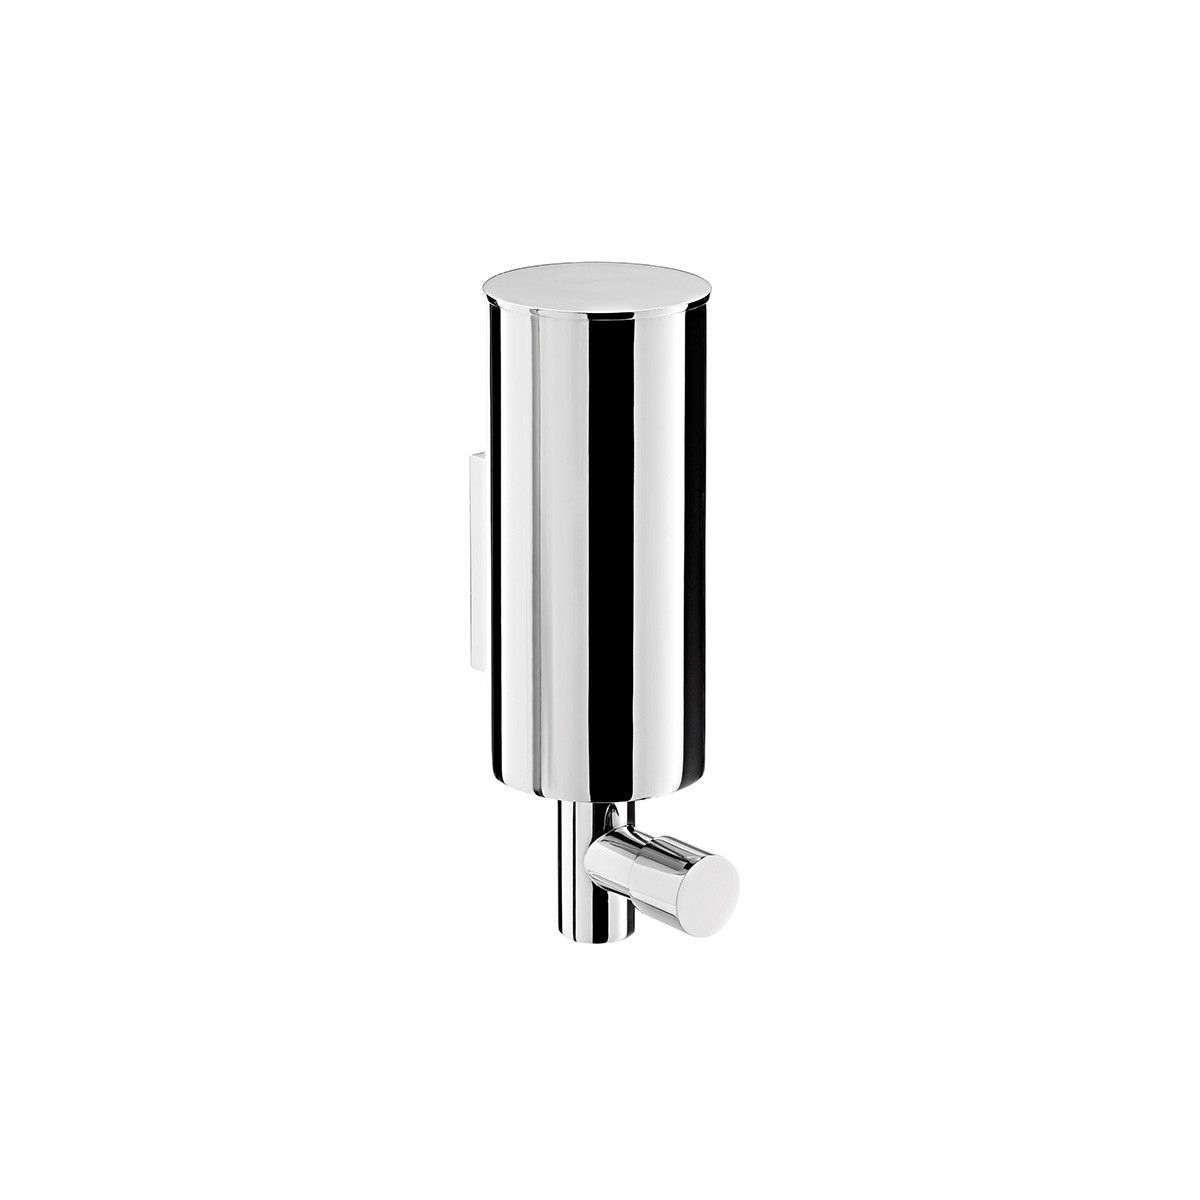 System 3521 001 02 Wall Mount Soap Dispenser Wall Mounted Soap